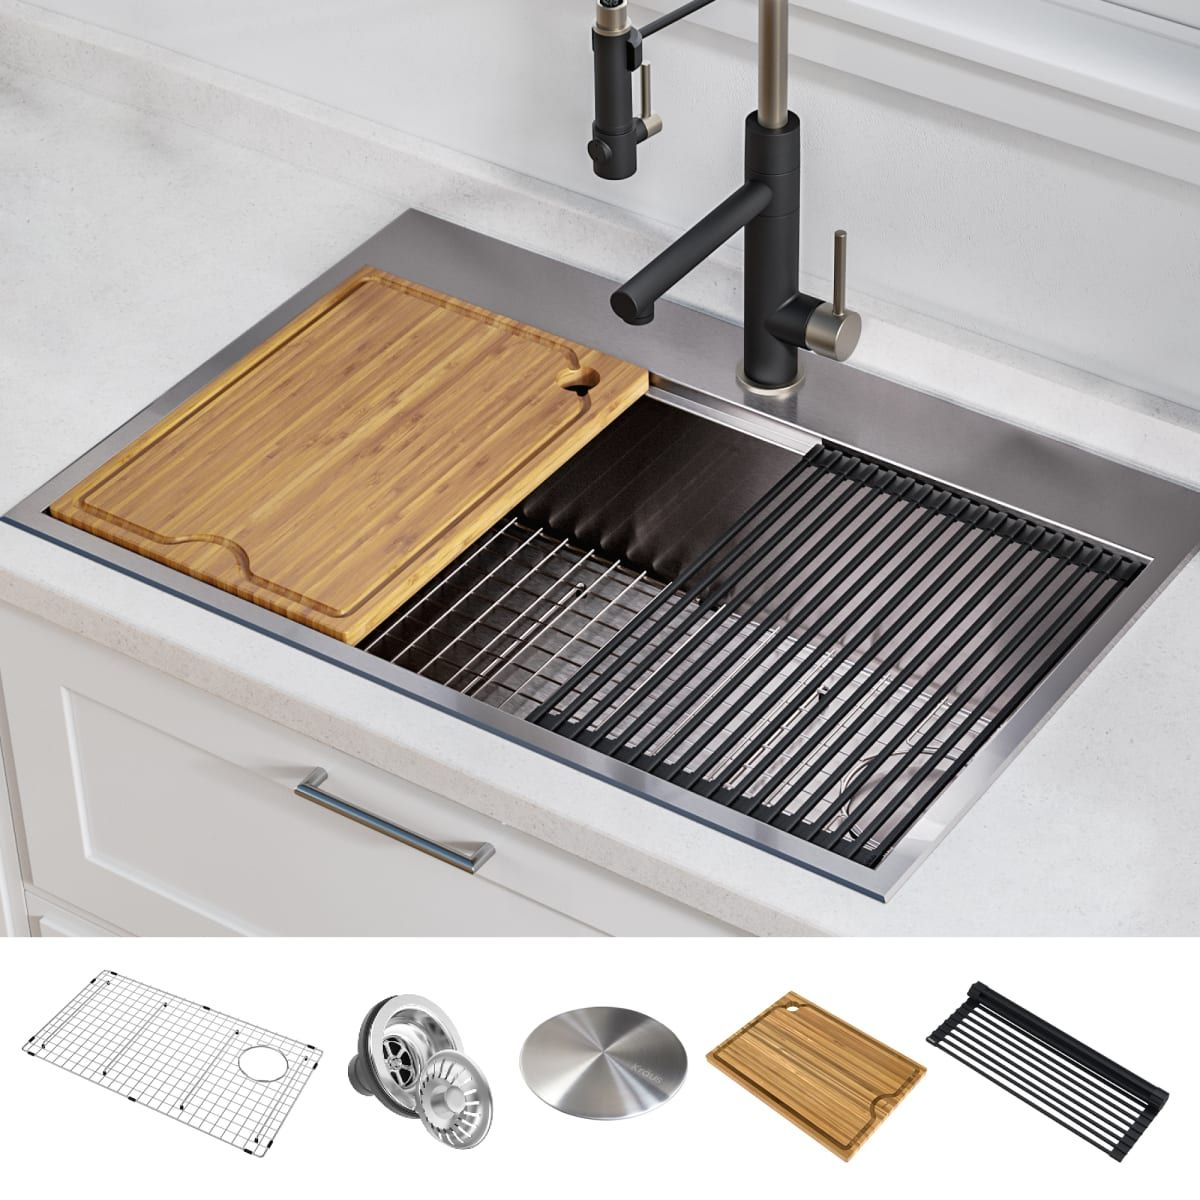 Boden Kitchen Soap Dispenser Sink Mats Kitchen Sink